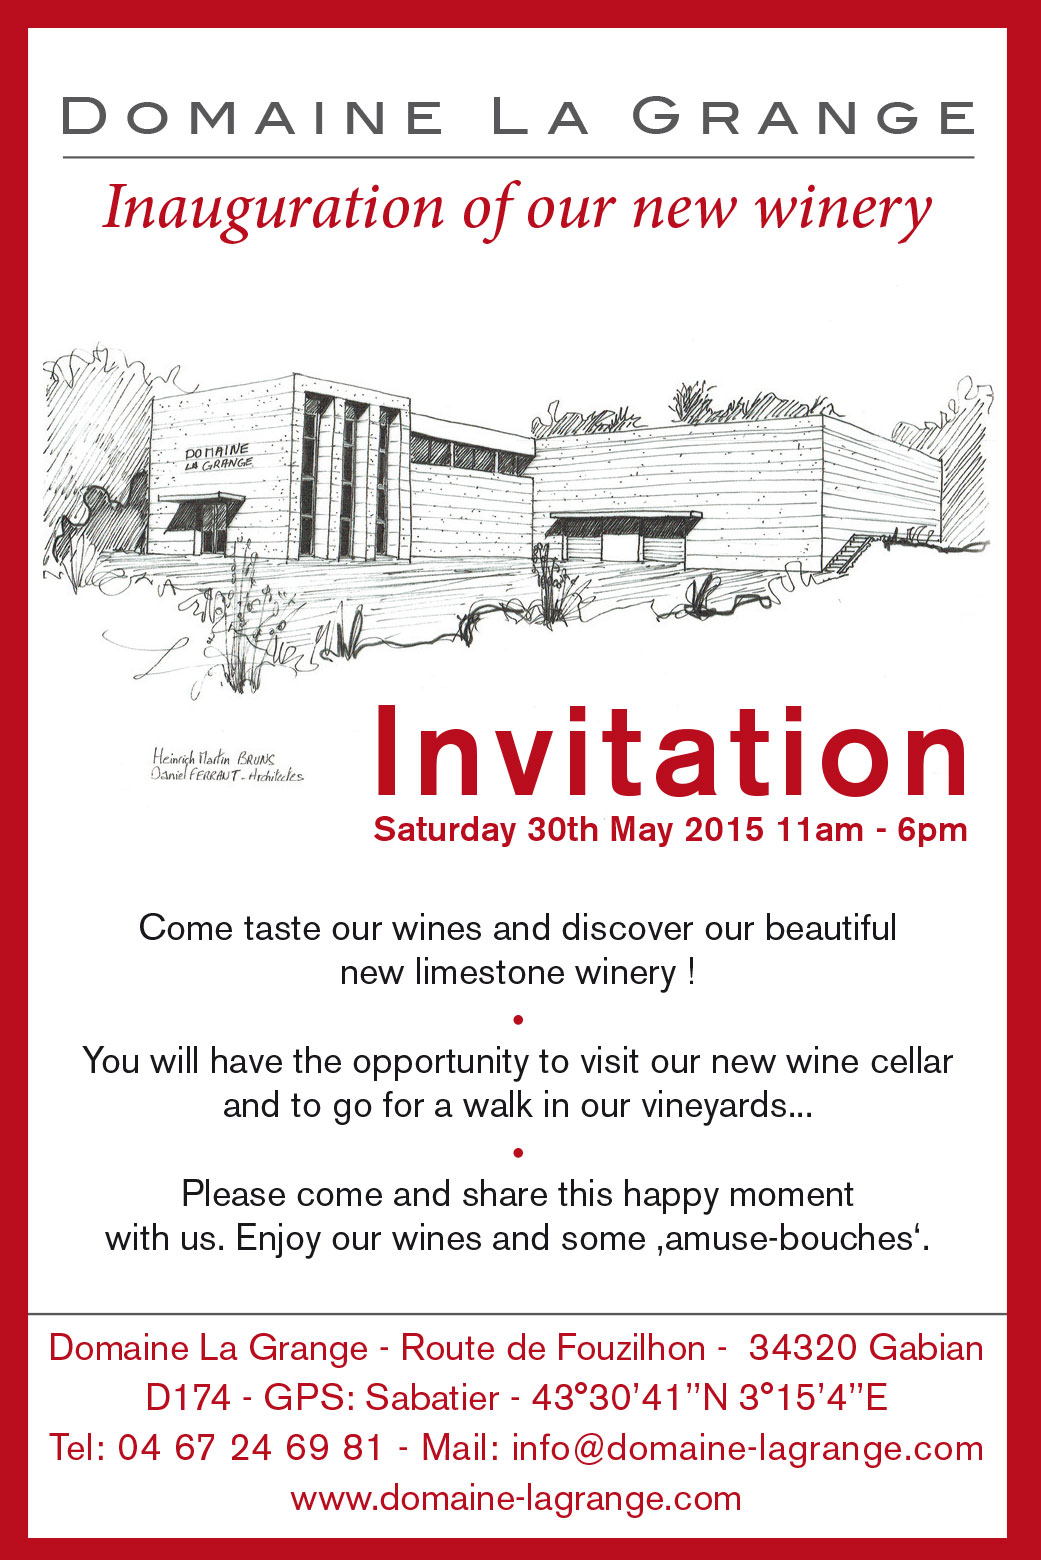 Only Four Days Until The Inauguration Of Our New Winery The